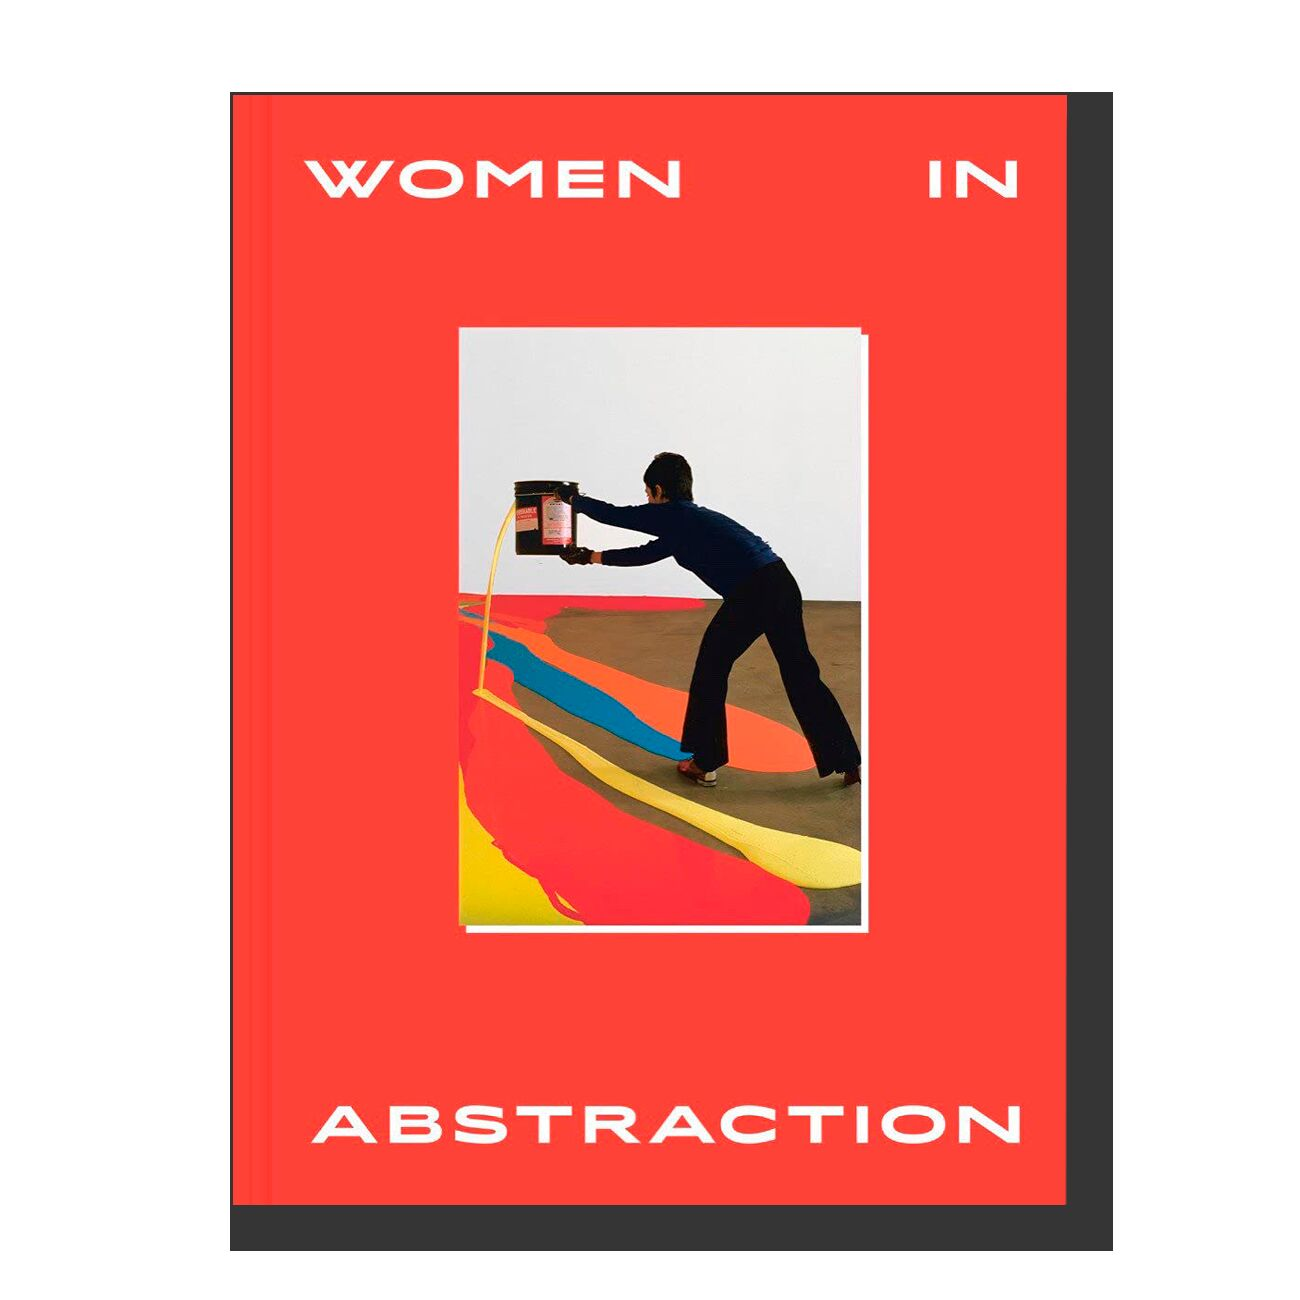 Women in Abstraction